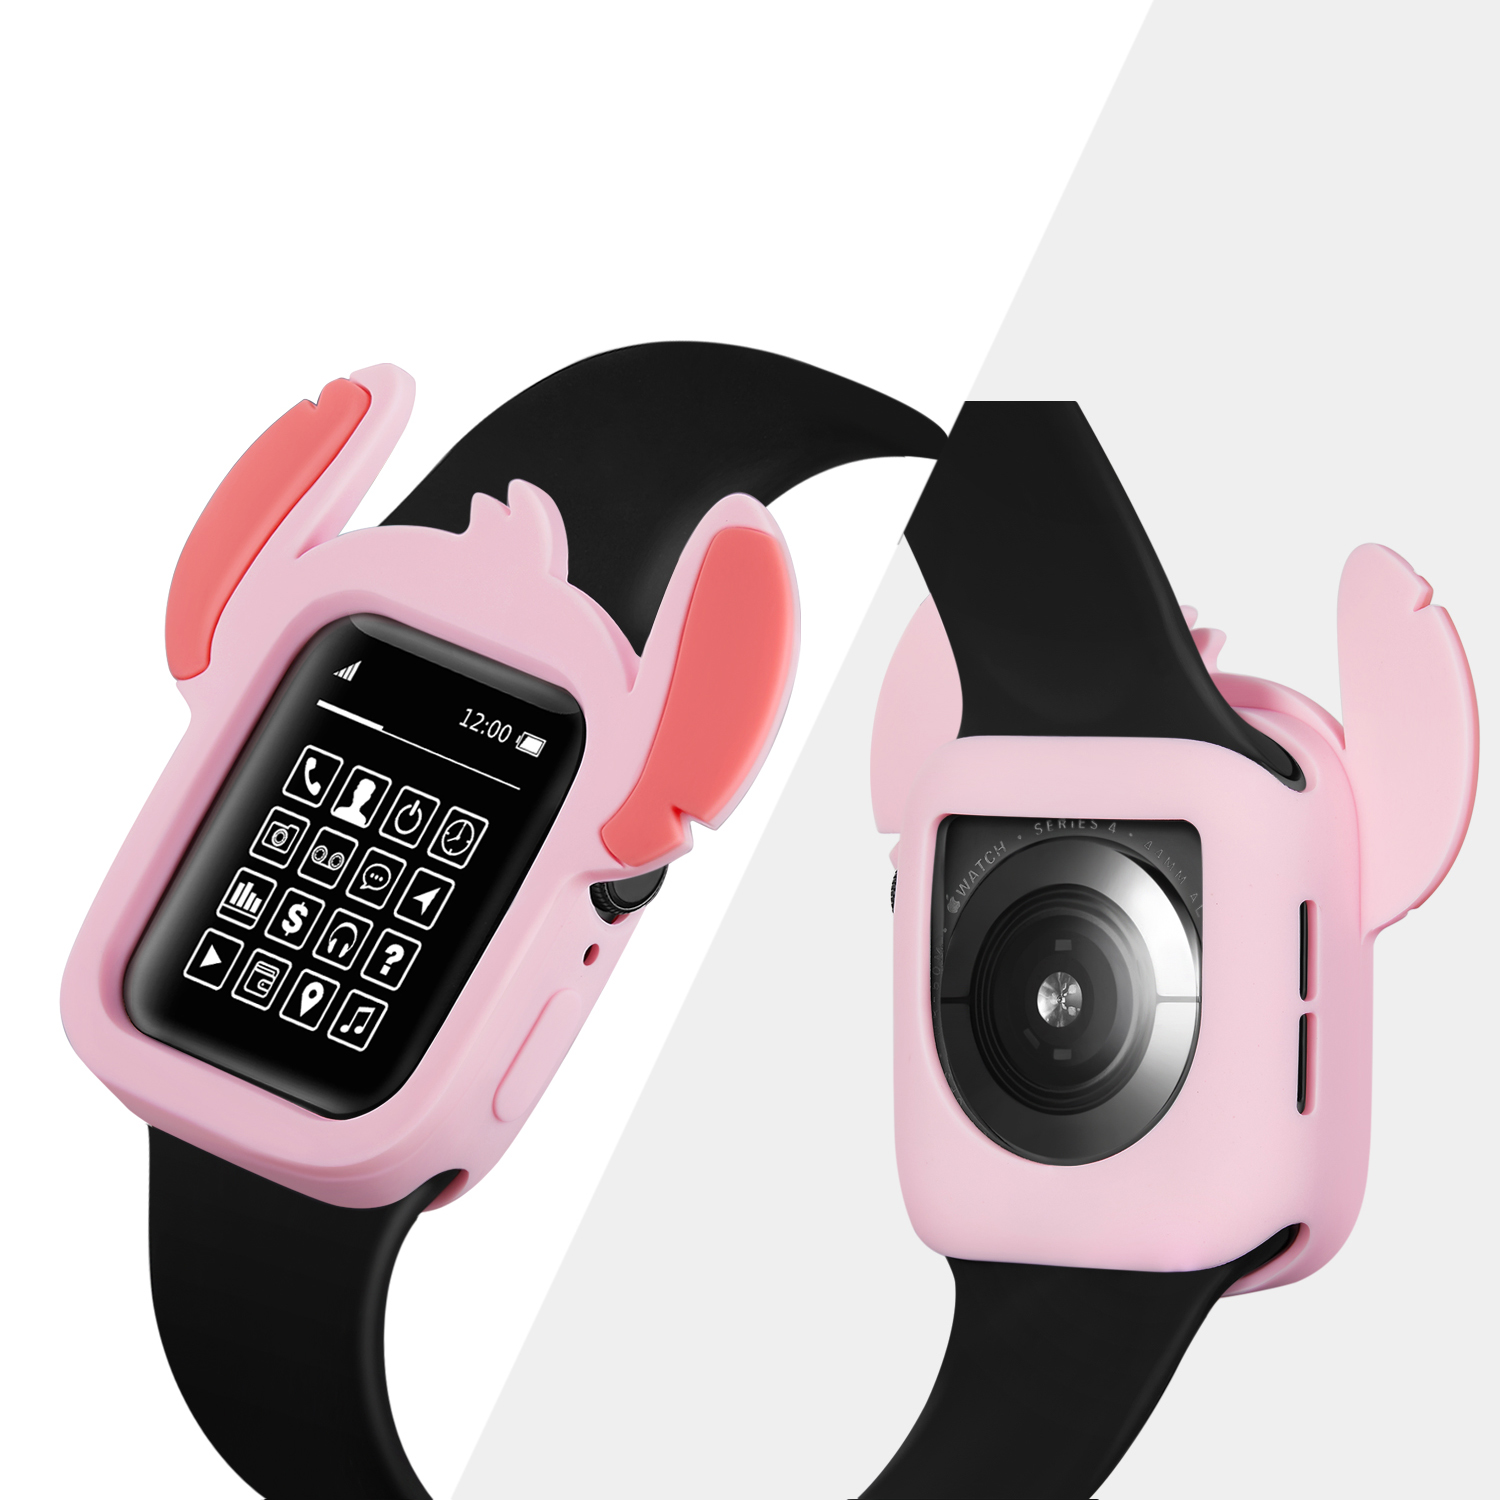 Serilabee Stitch Case for Apple Watch 18